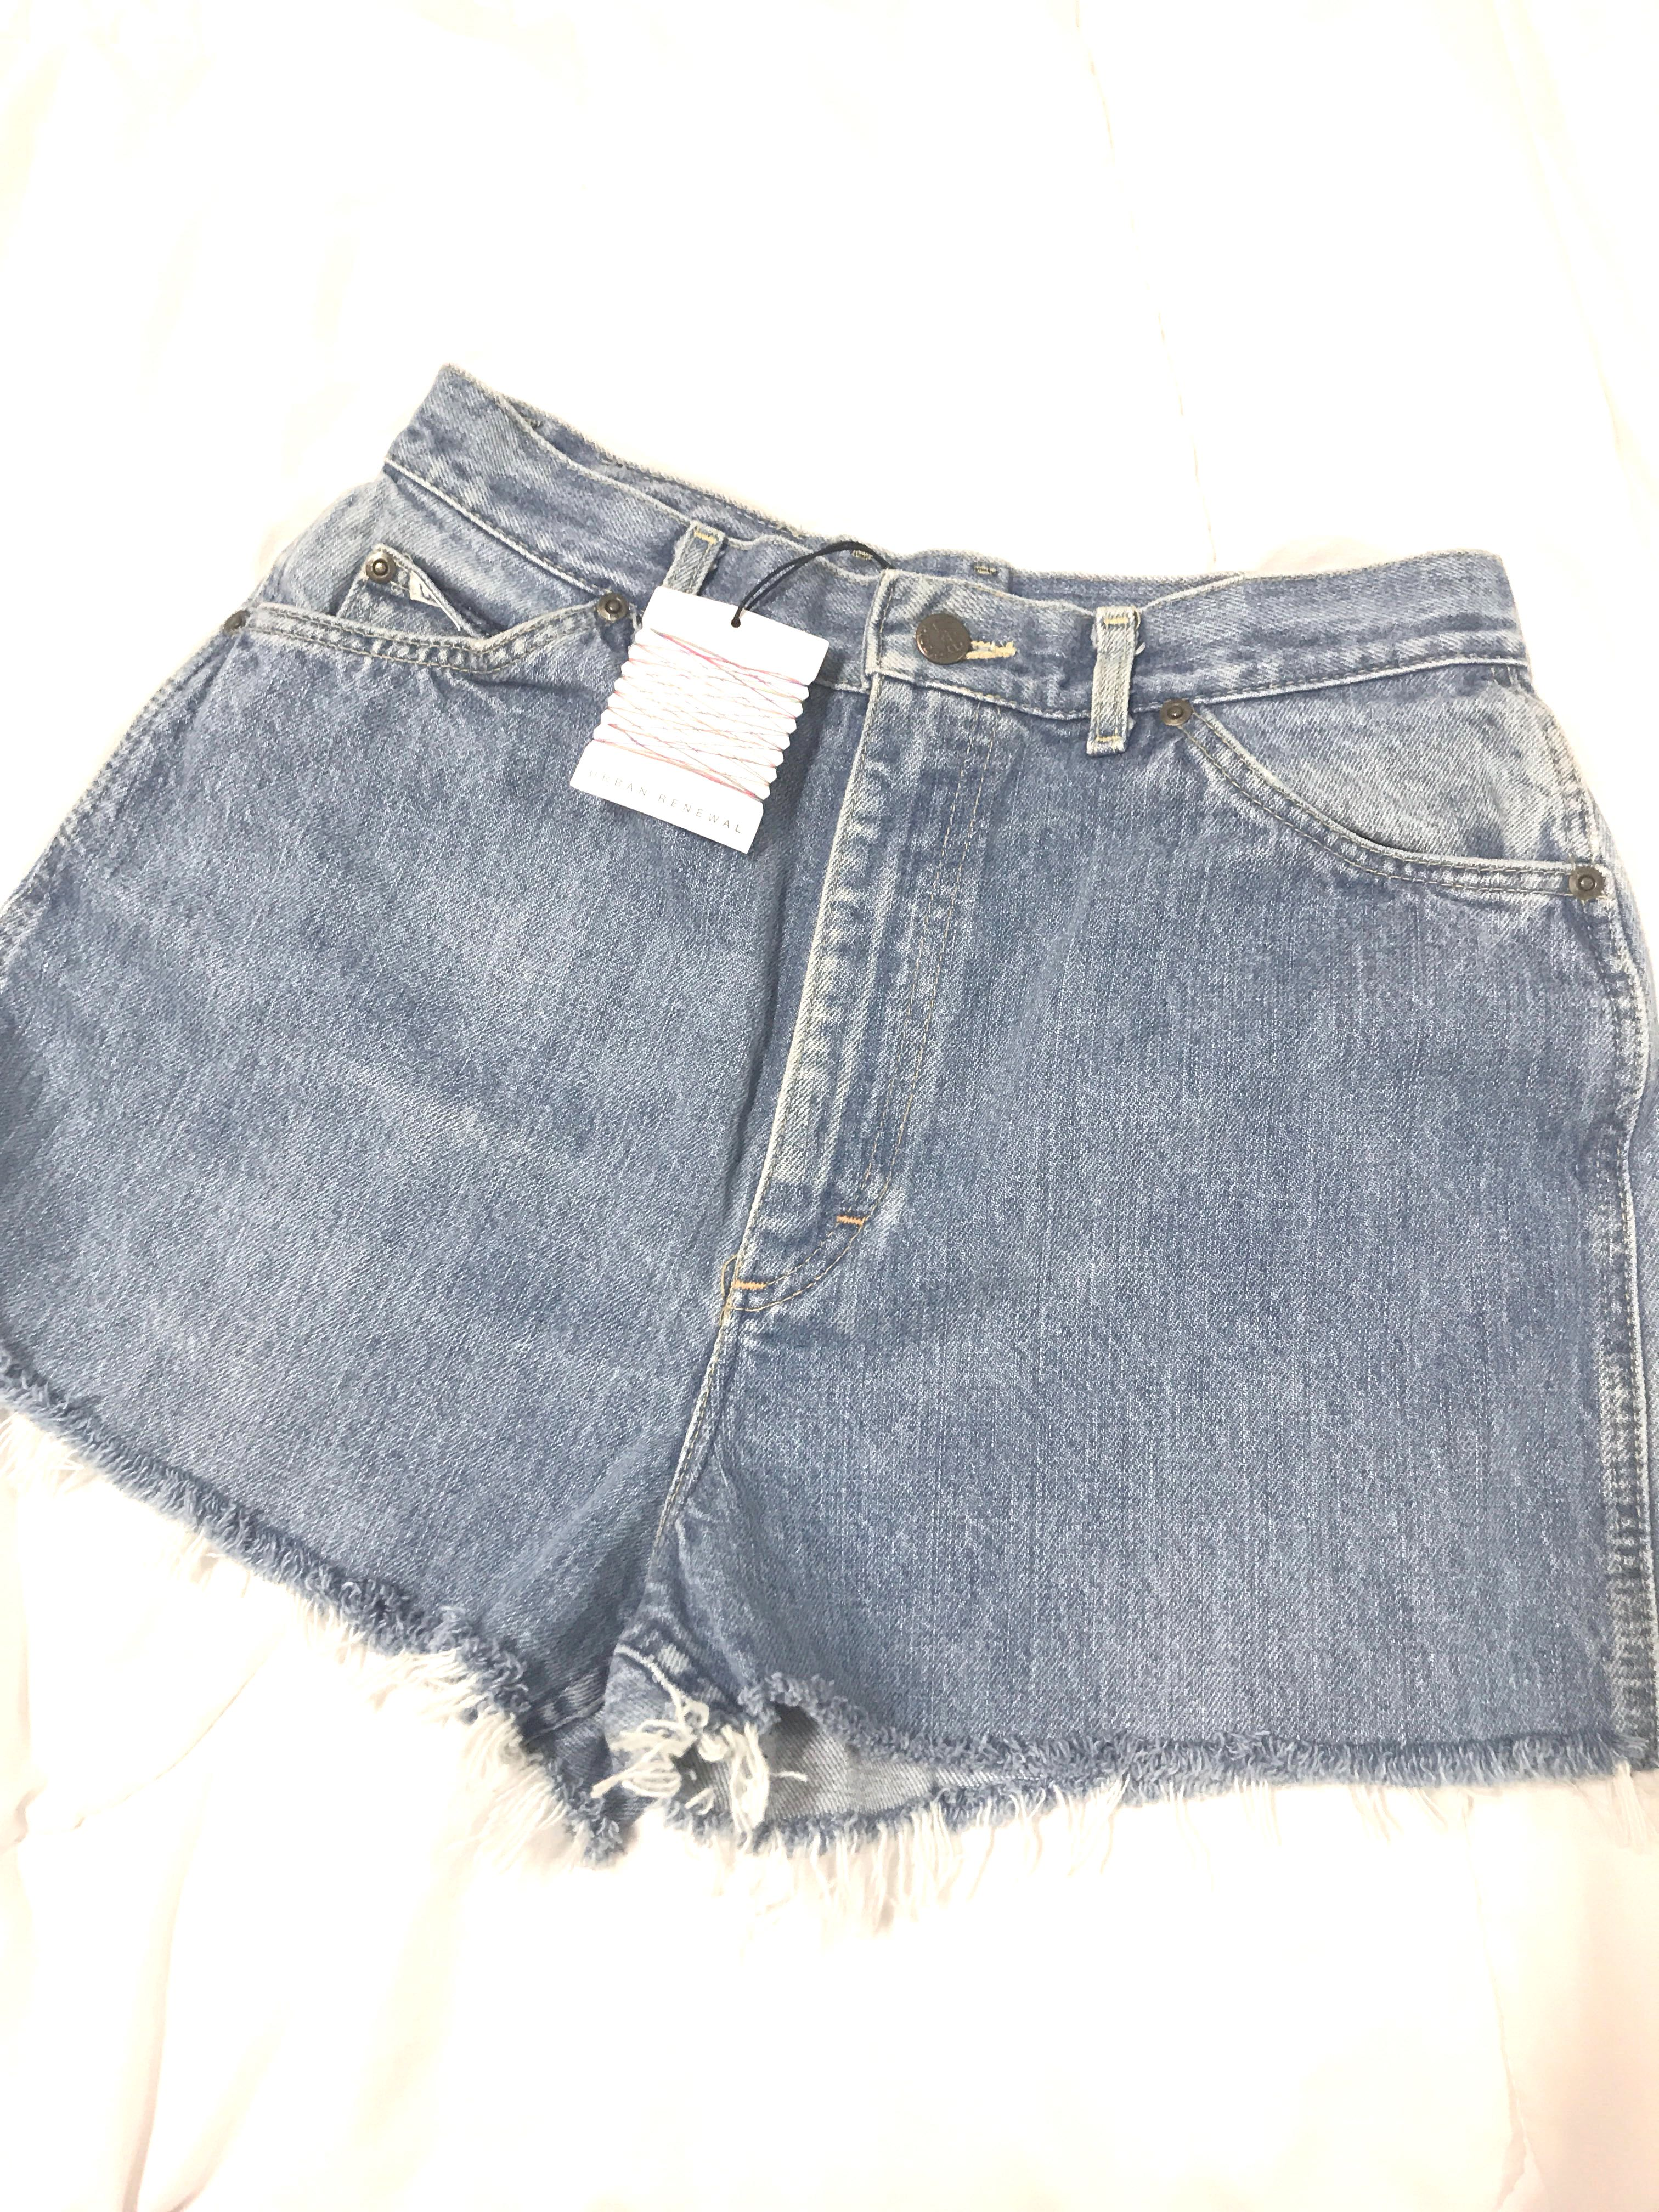 f4e7c4a538 BNWT Urban Outfitters x LEE Riders Jeans High Waist Shorts #single11,  Women's Fashion, Clothes, Pants, Jeans & Shorts on Carousell